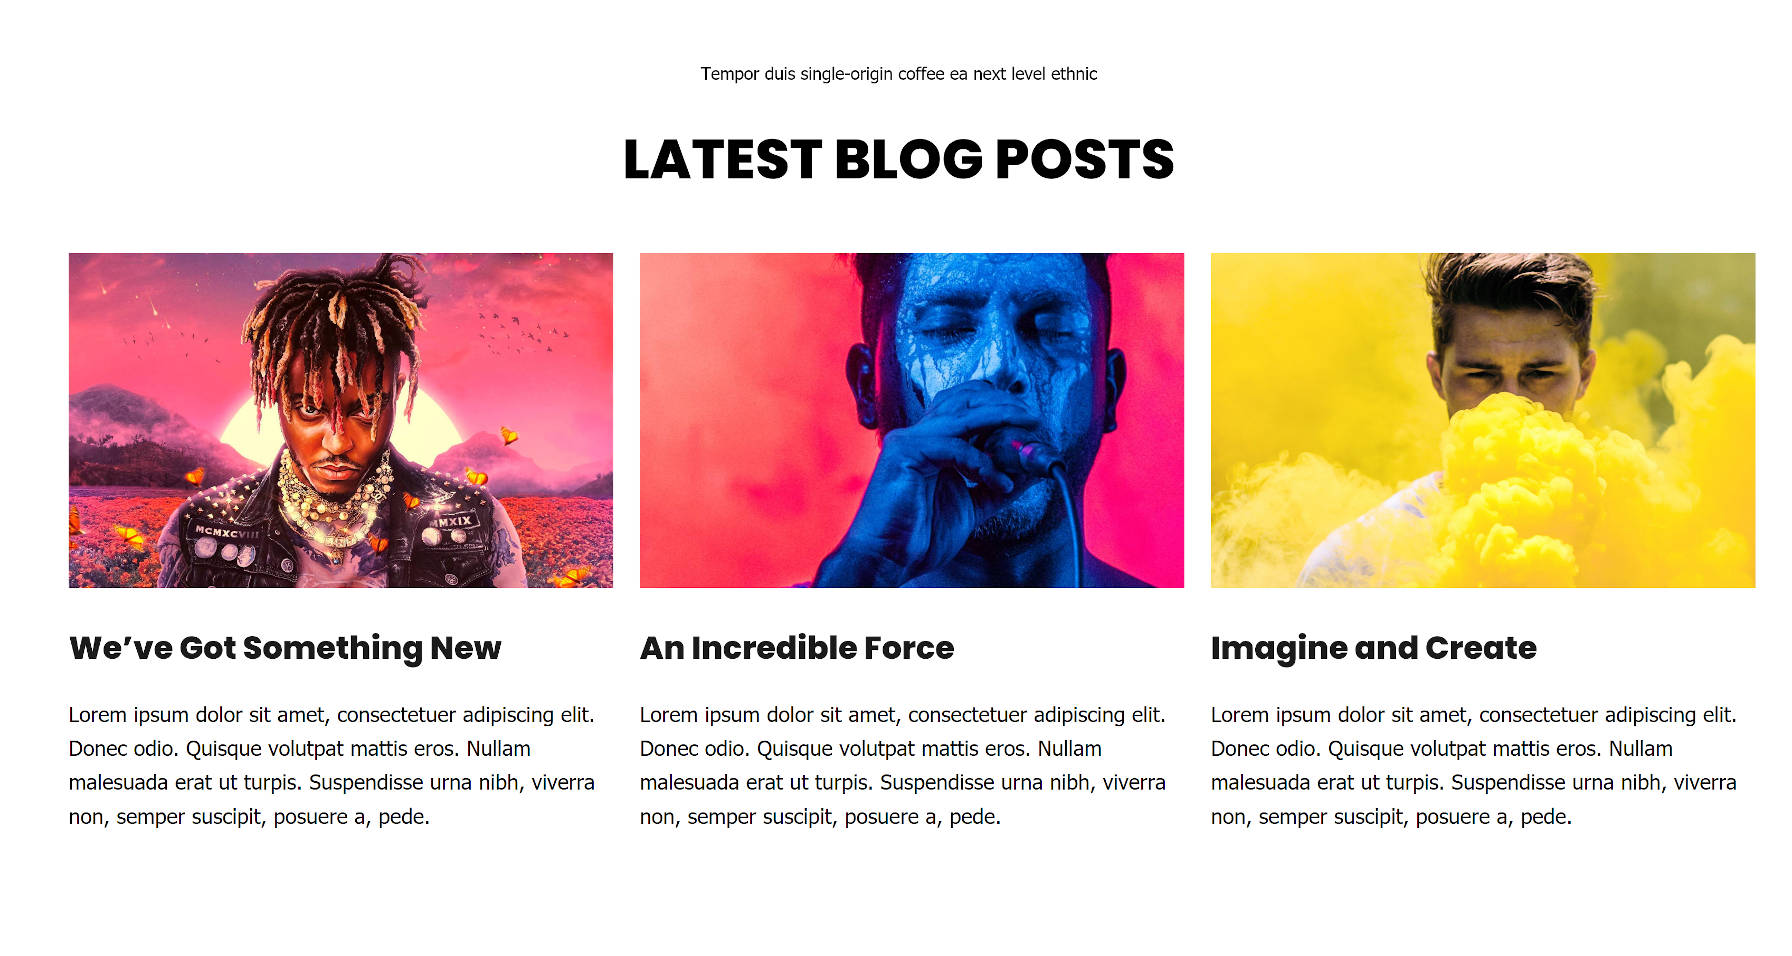 recreating-the-music-artist-wordpress-theme-homepage-with-the-block-editor-6 Recreating the Music Artist WordPress Theme Homepage With the Block Editor